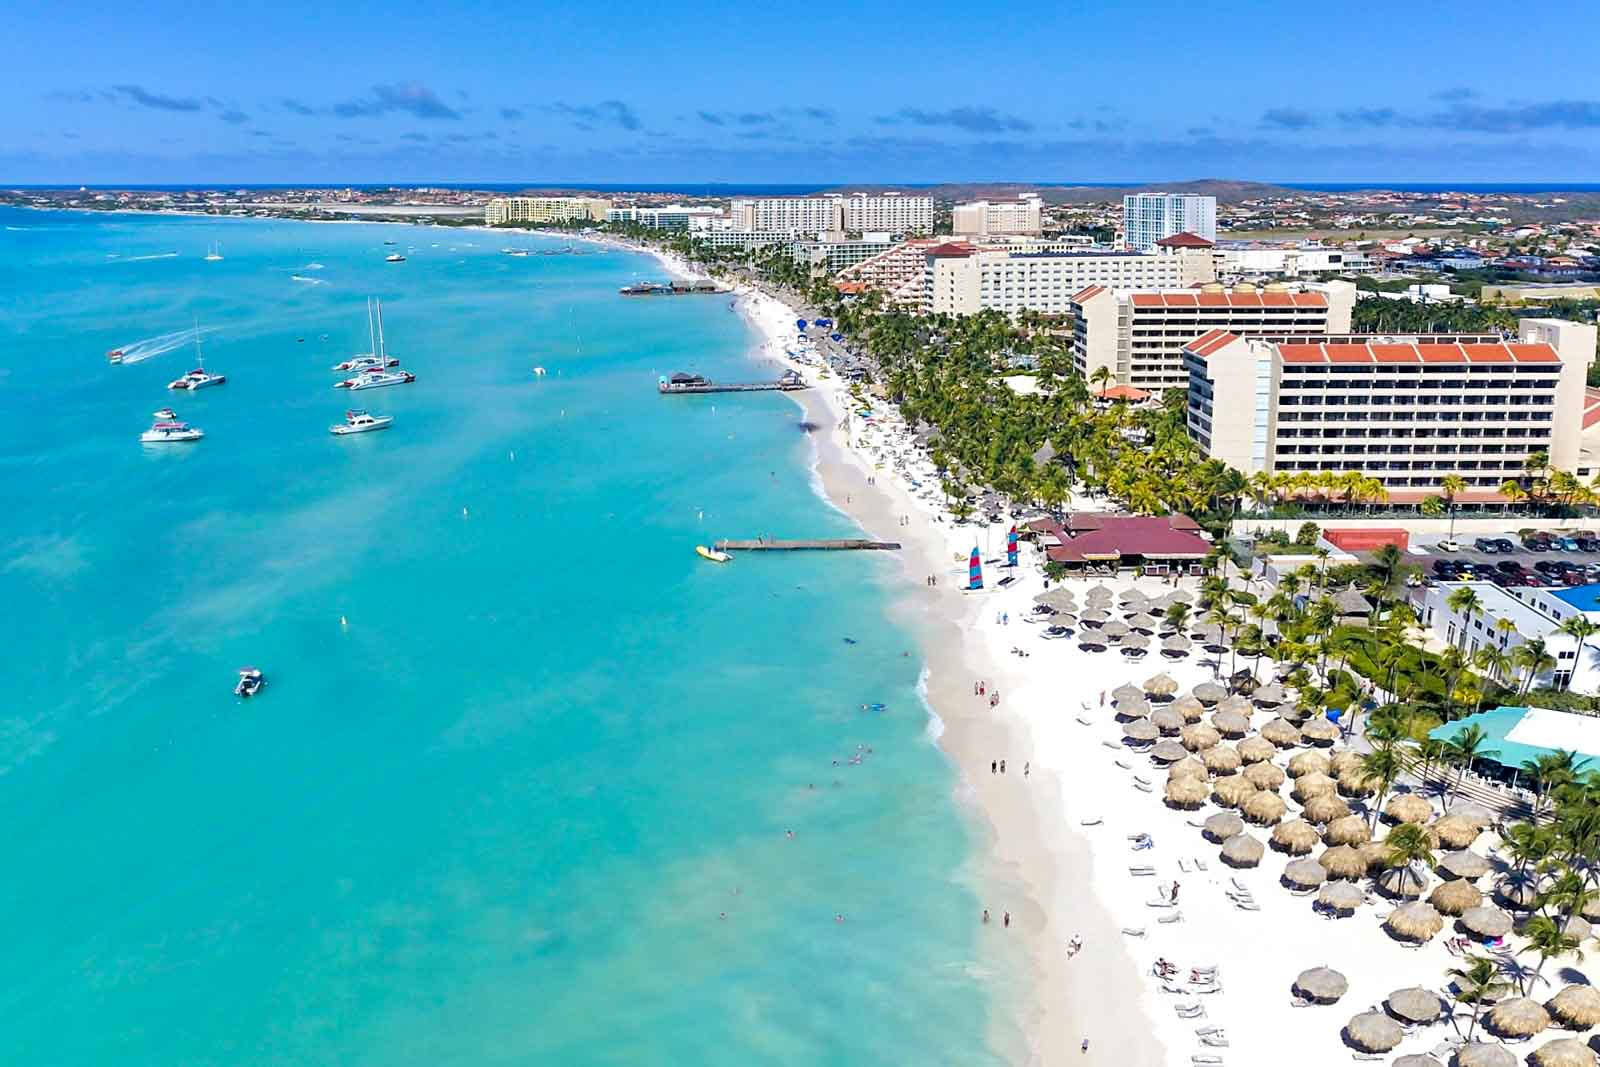 Aerial view of Palm Beach in Aruba, showing high-rise hotels